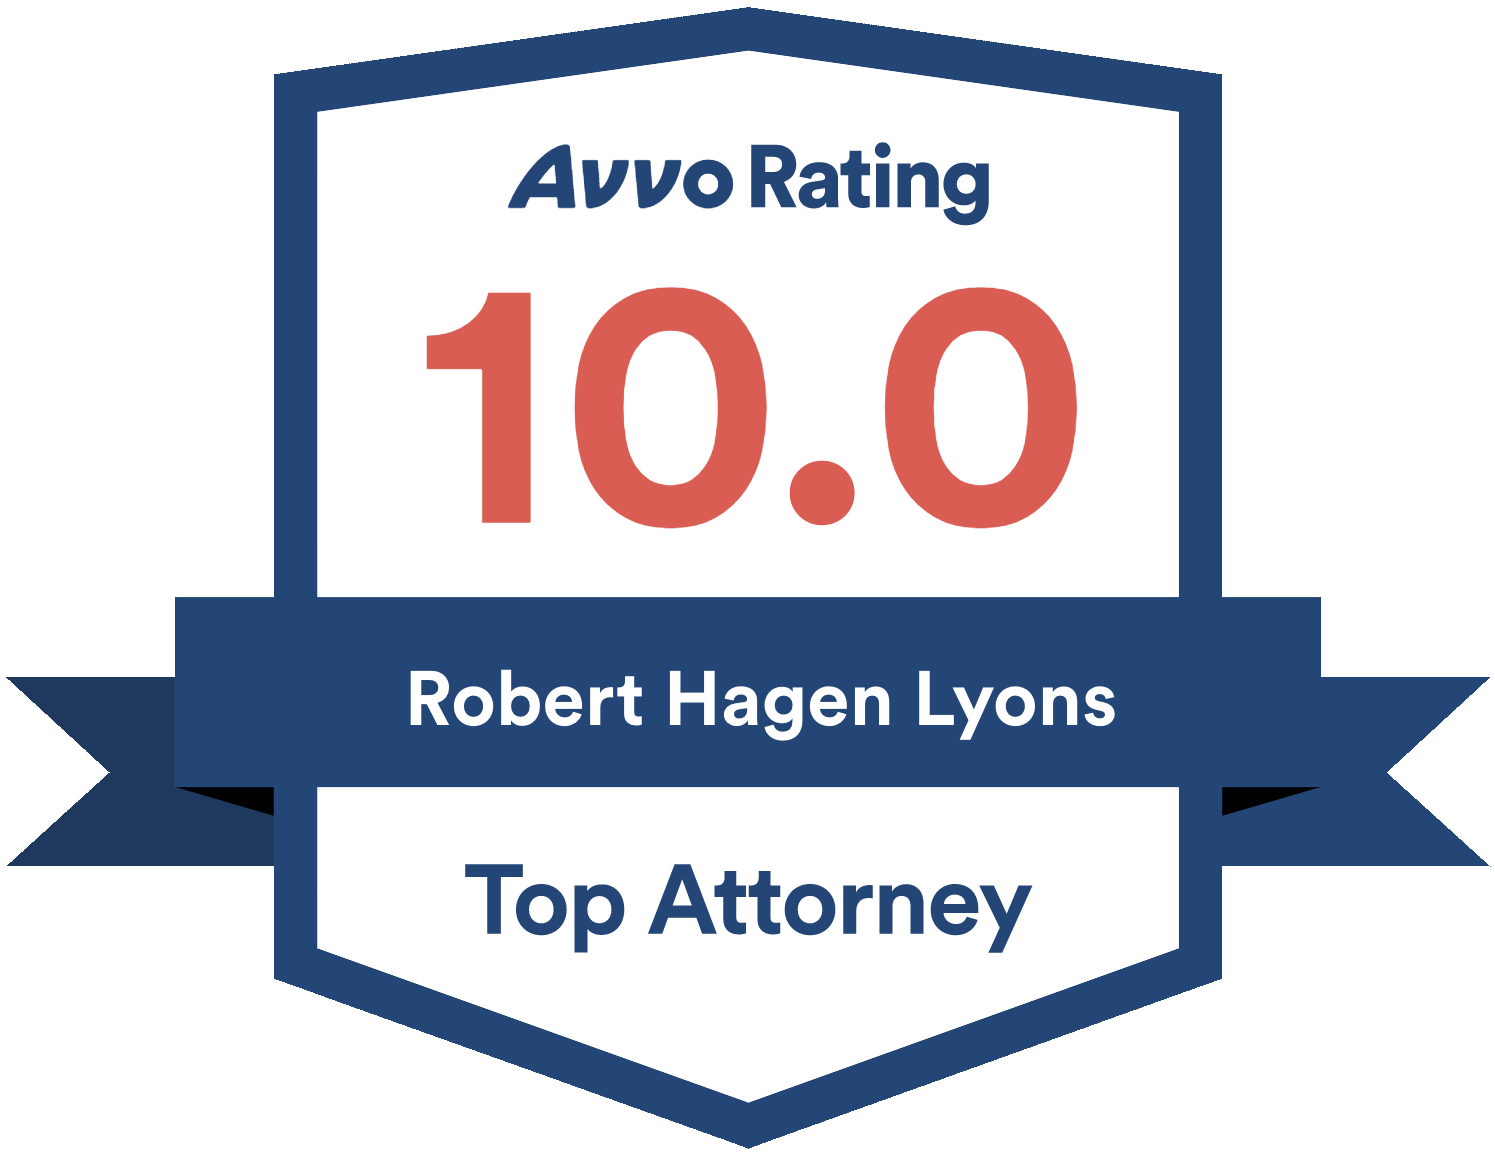 Robert Hagen Lyons Avvo badge